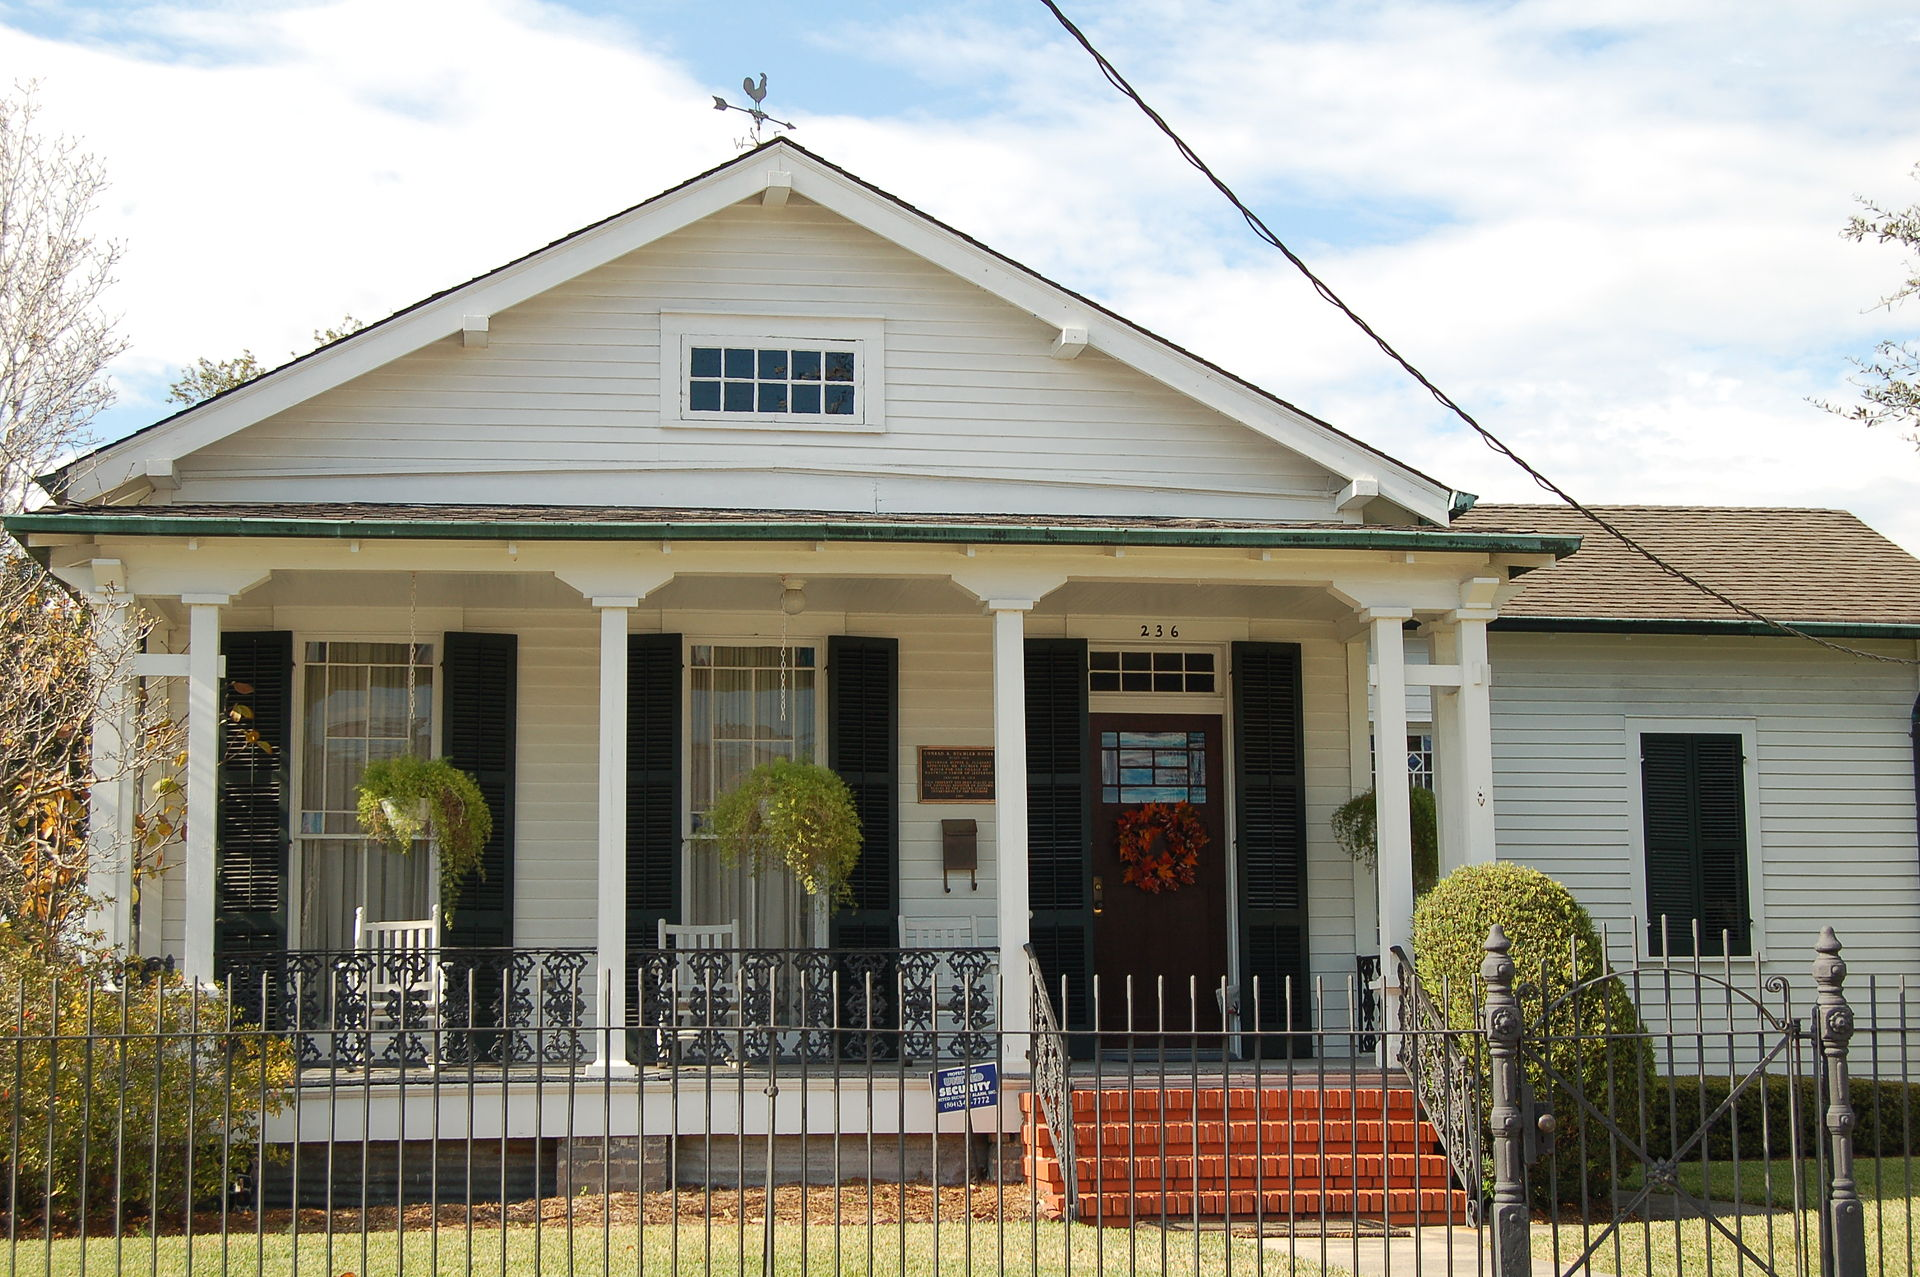 The Conrad A. Buchler House is named after Westwego's first mayor.